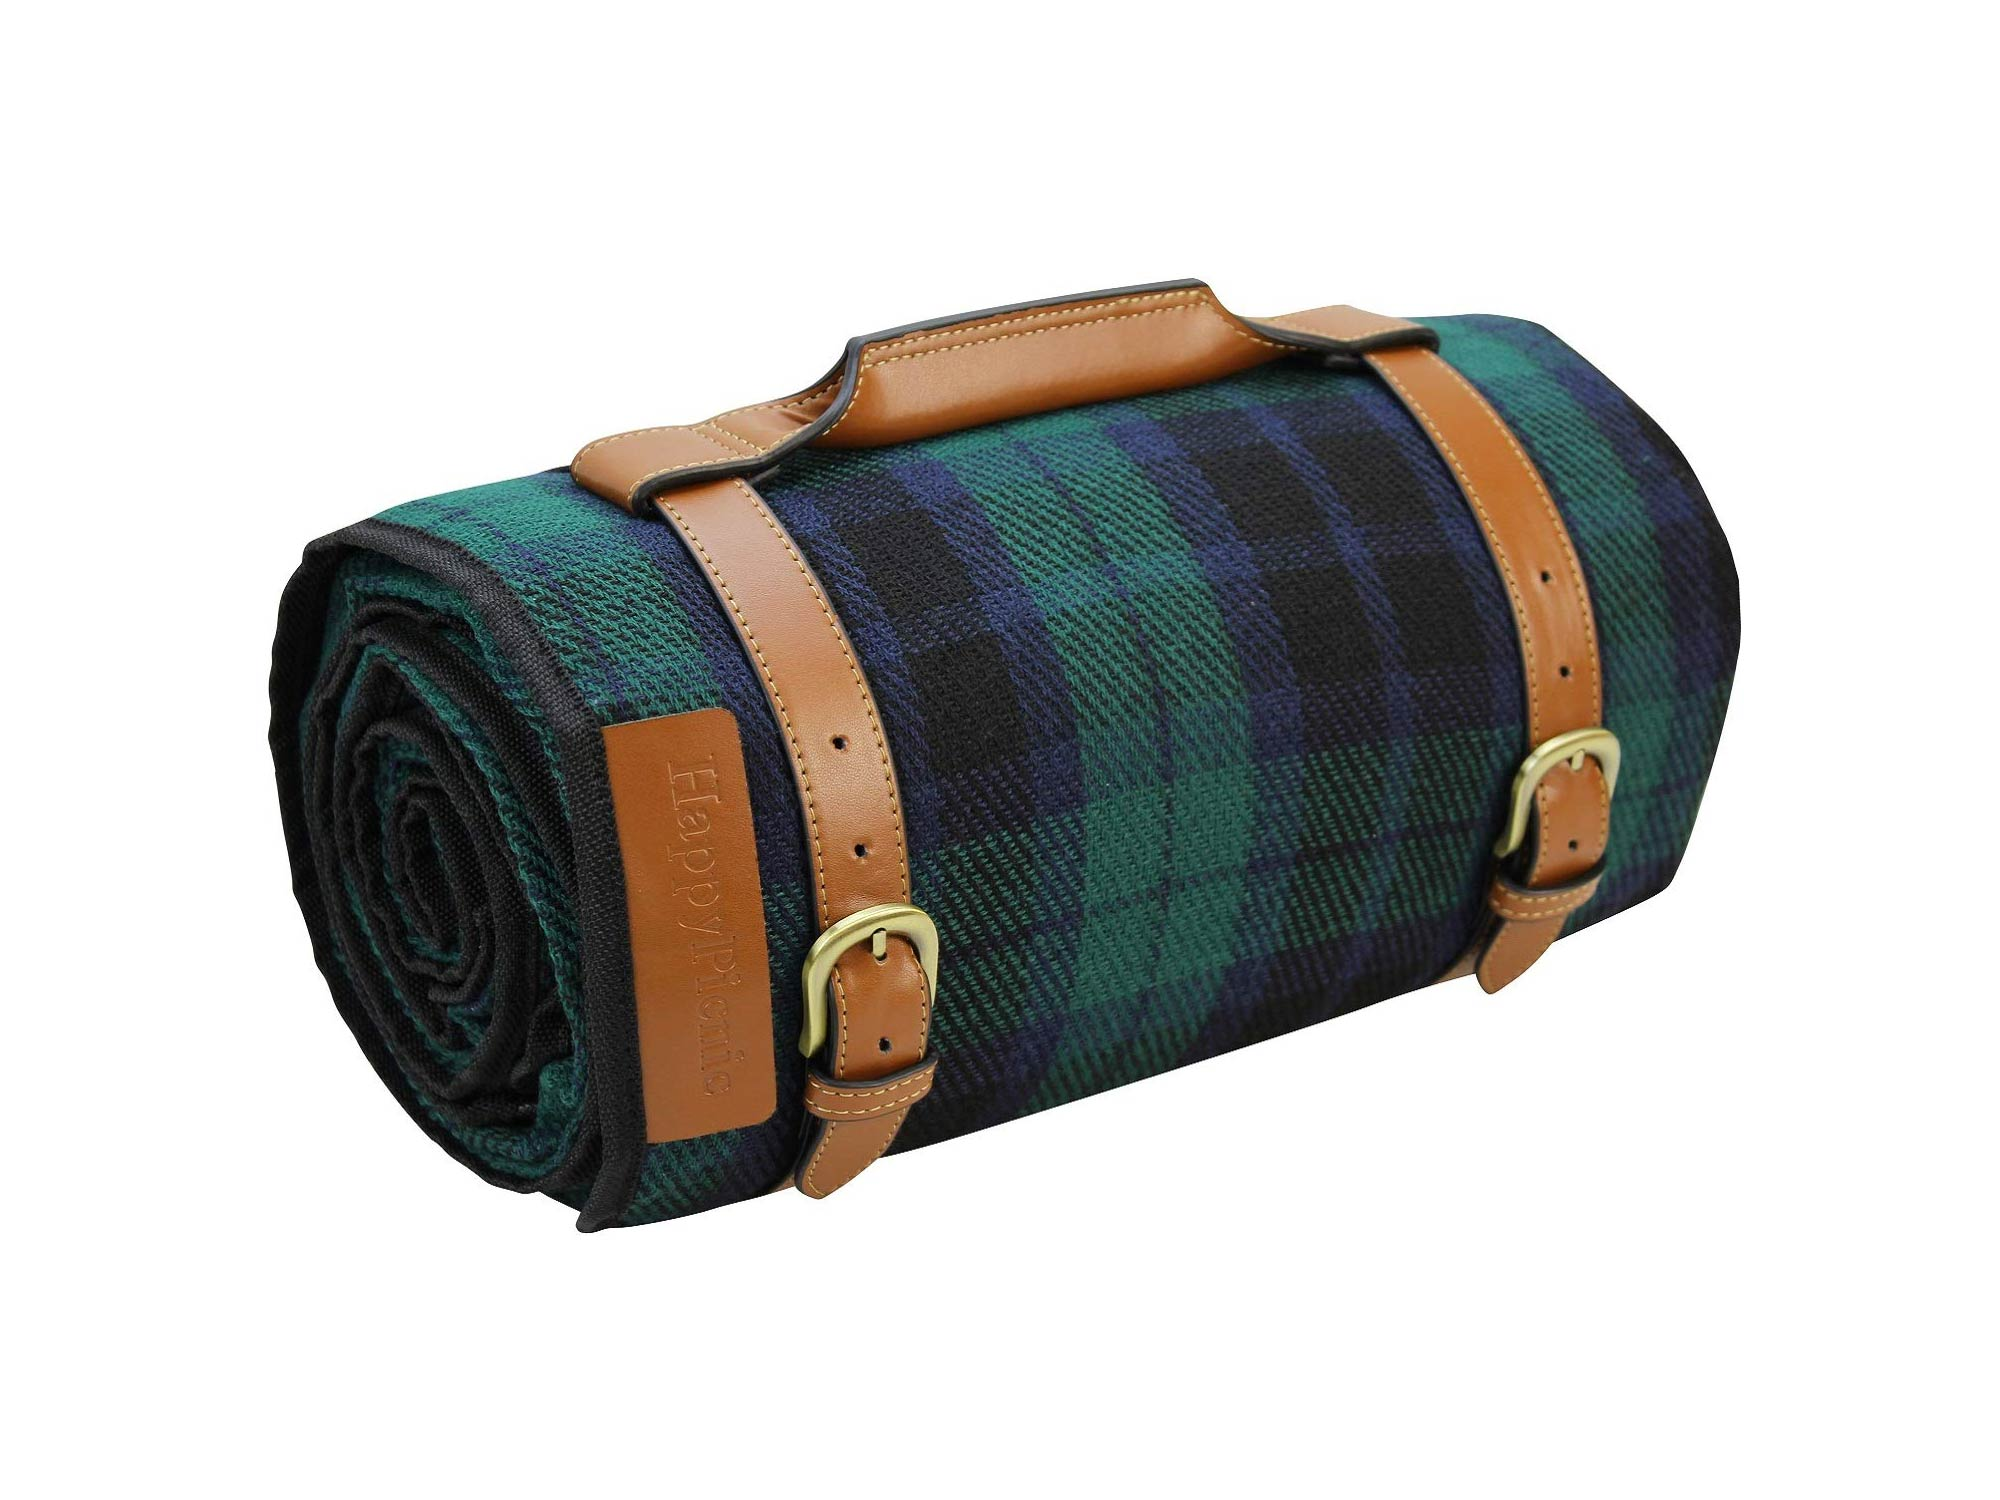 Picnic Rug for Outdoor Lawn Park or Camping